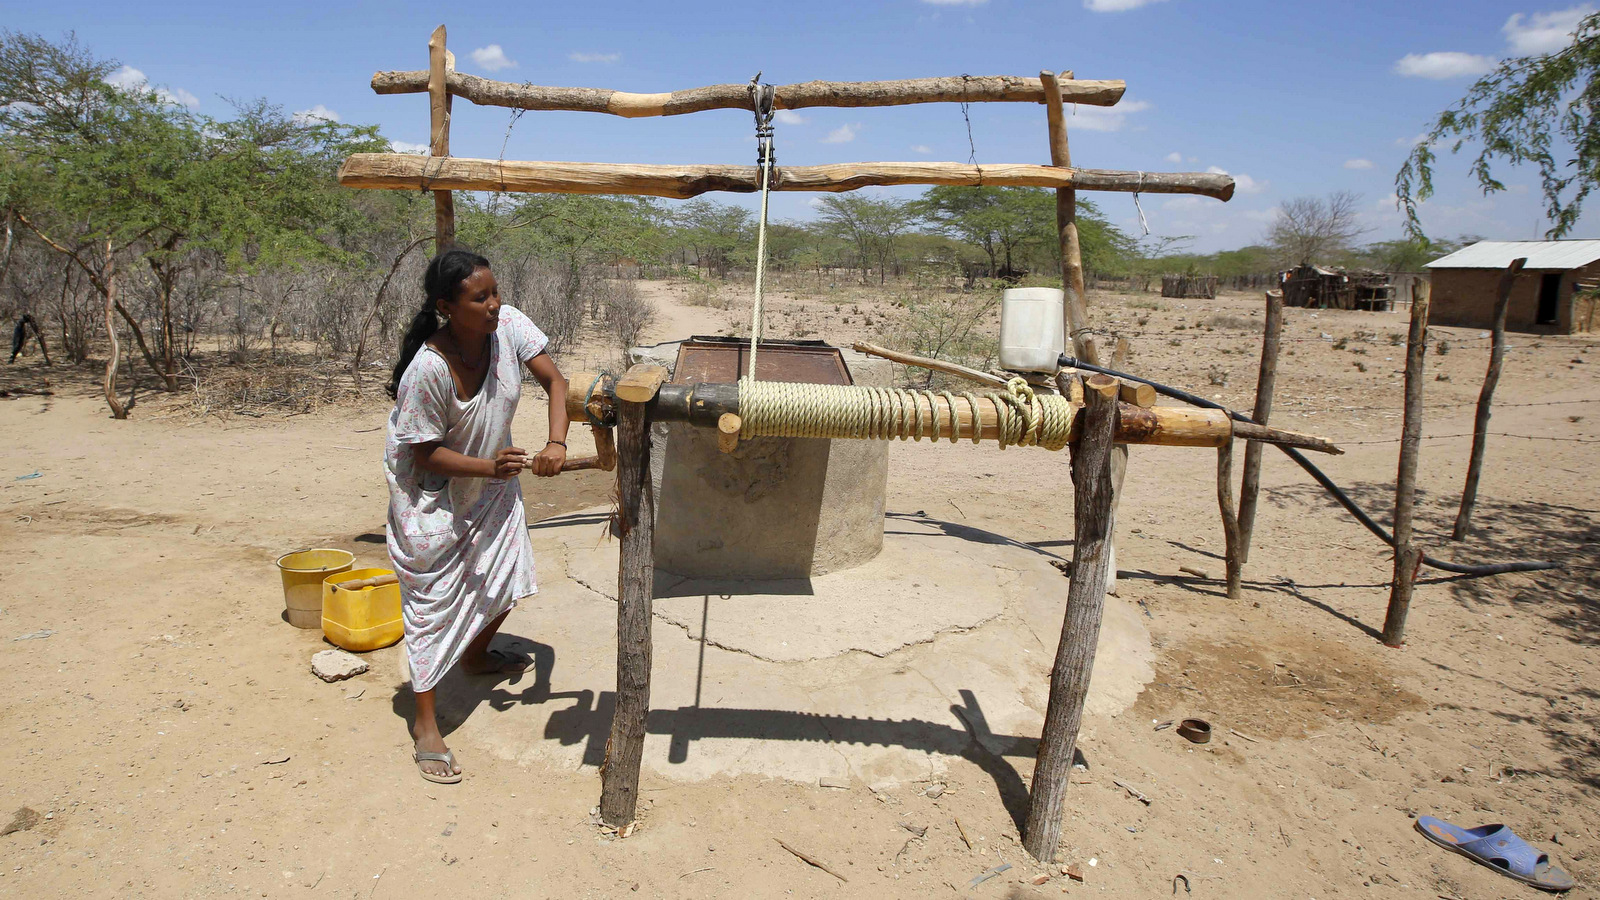 Colombian Gov't Sells Out Indigenous Peoples' Drinking Water To Western Mining Interests